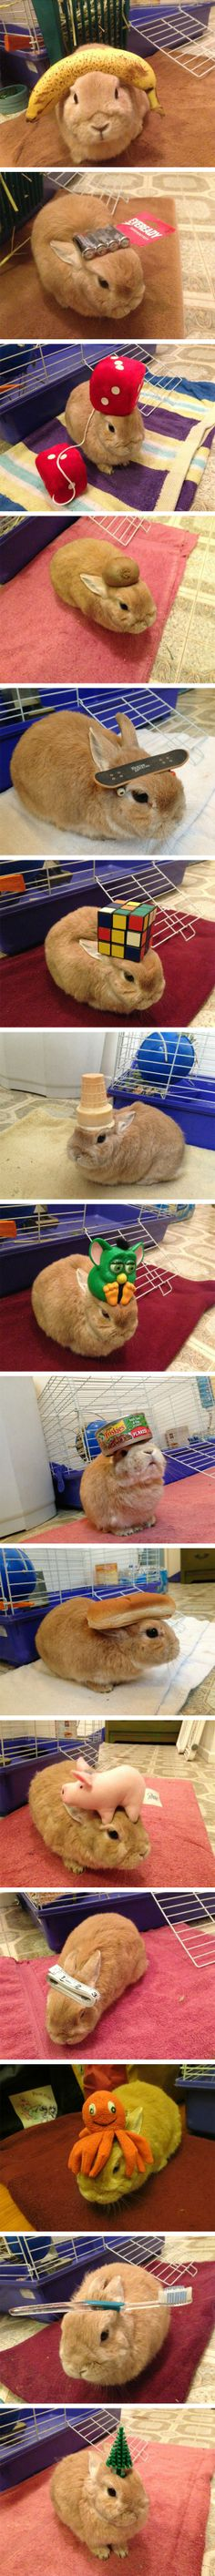 This bunny is patient.